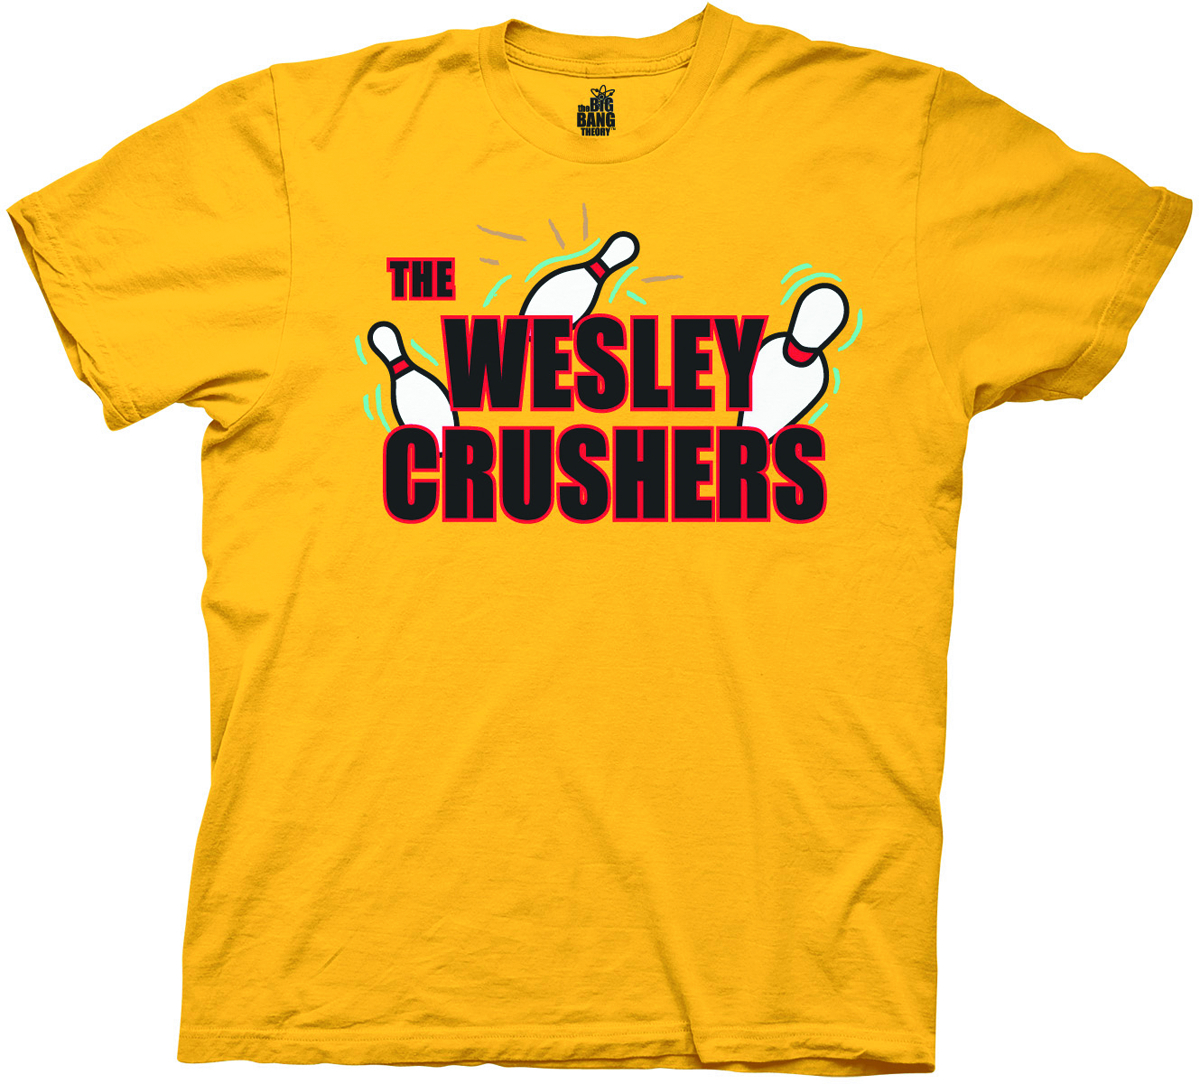 BBT WESLEY CRUSHERS YELLOW T/S SM